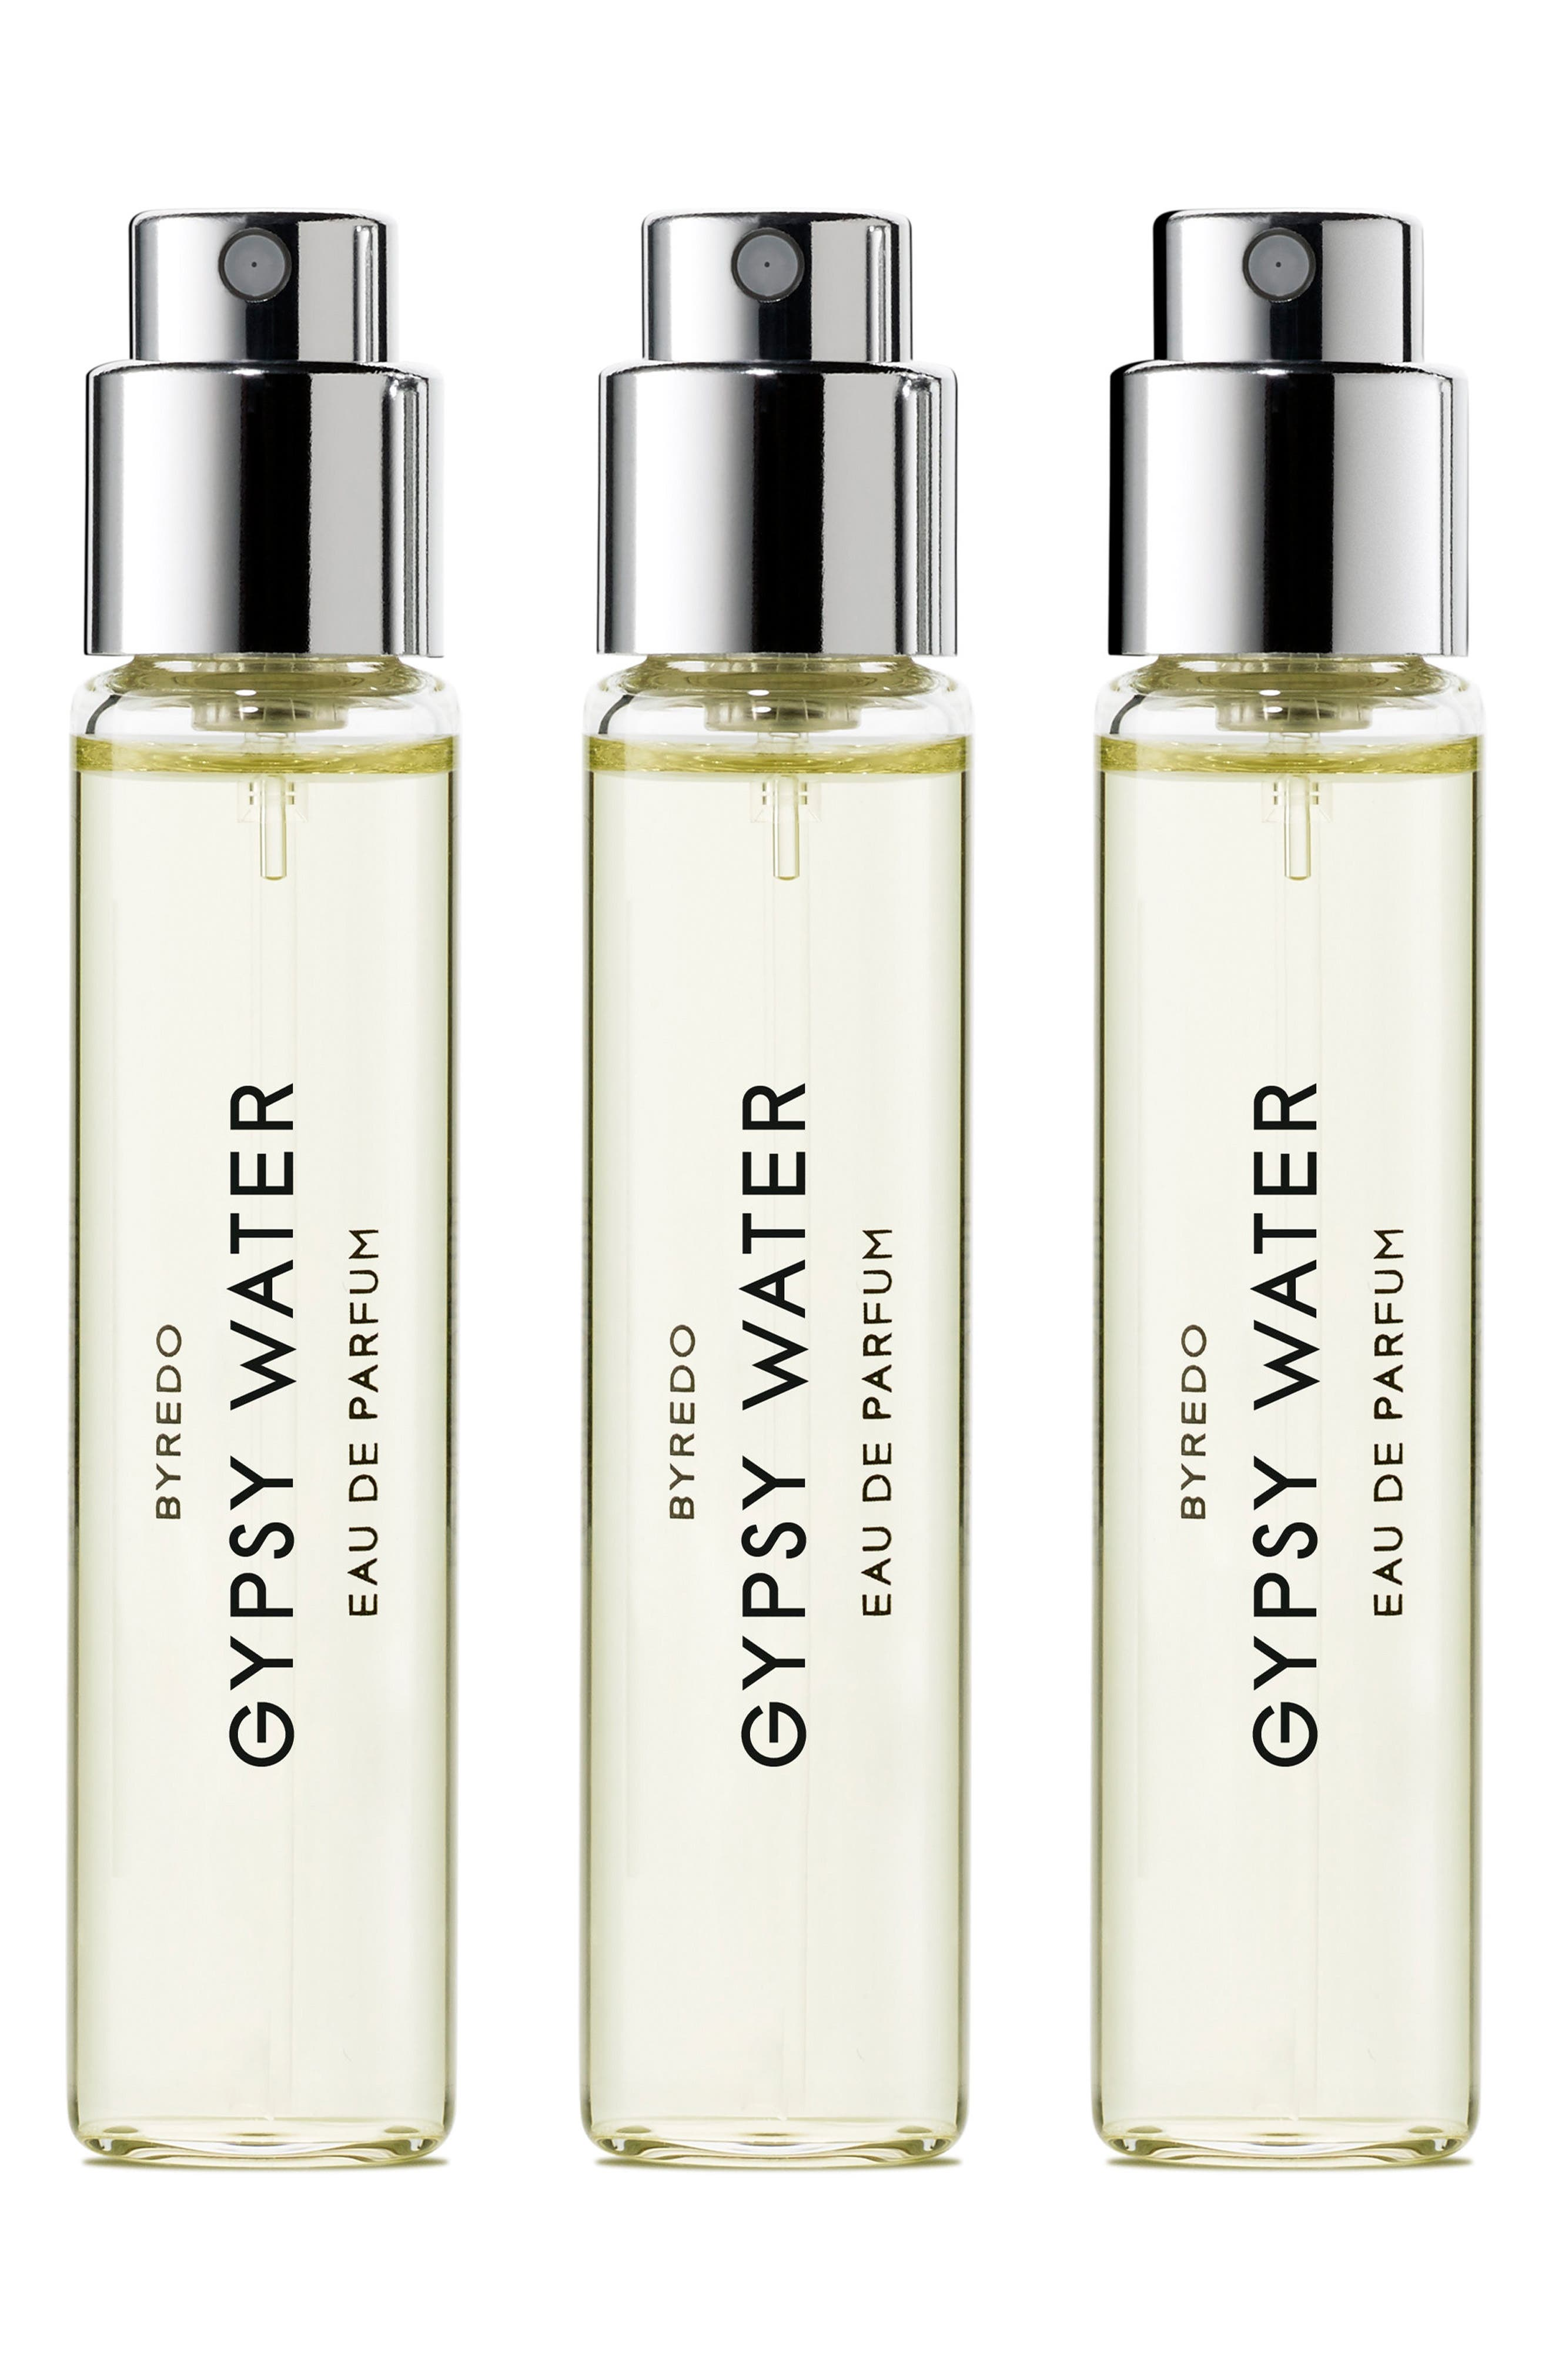 Main Image - BYREDO Gypsy Water Eau de Parfum Travel Spray Trio